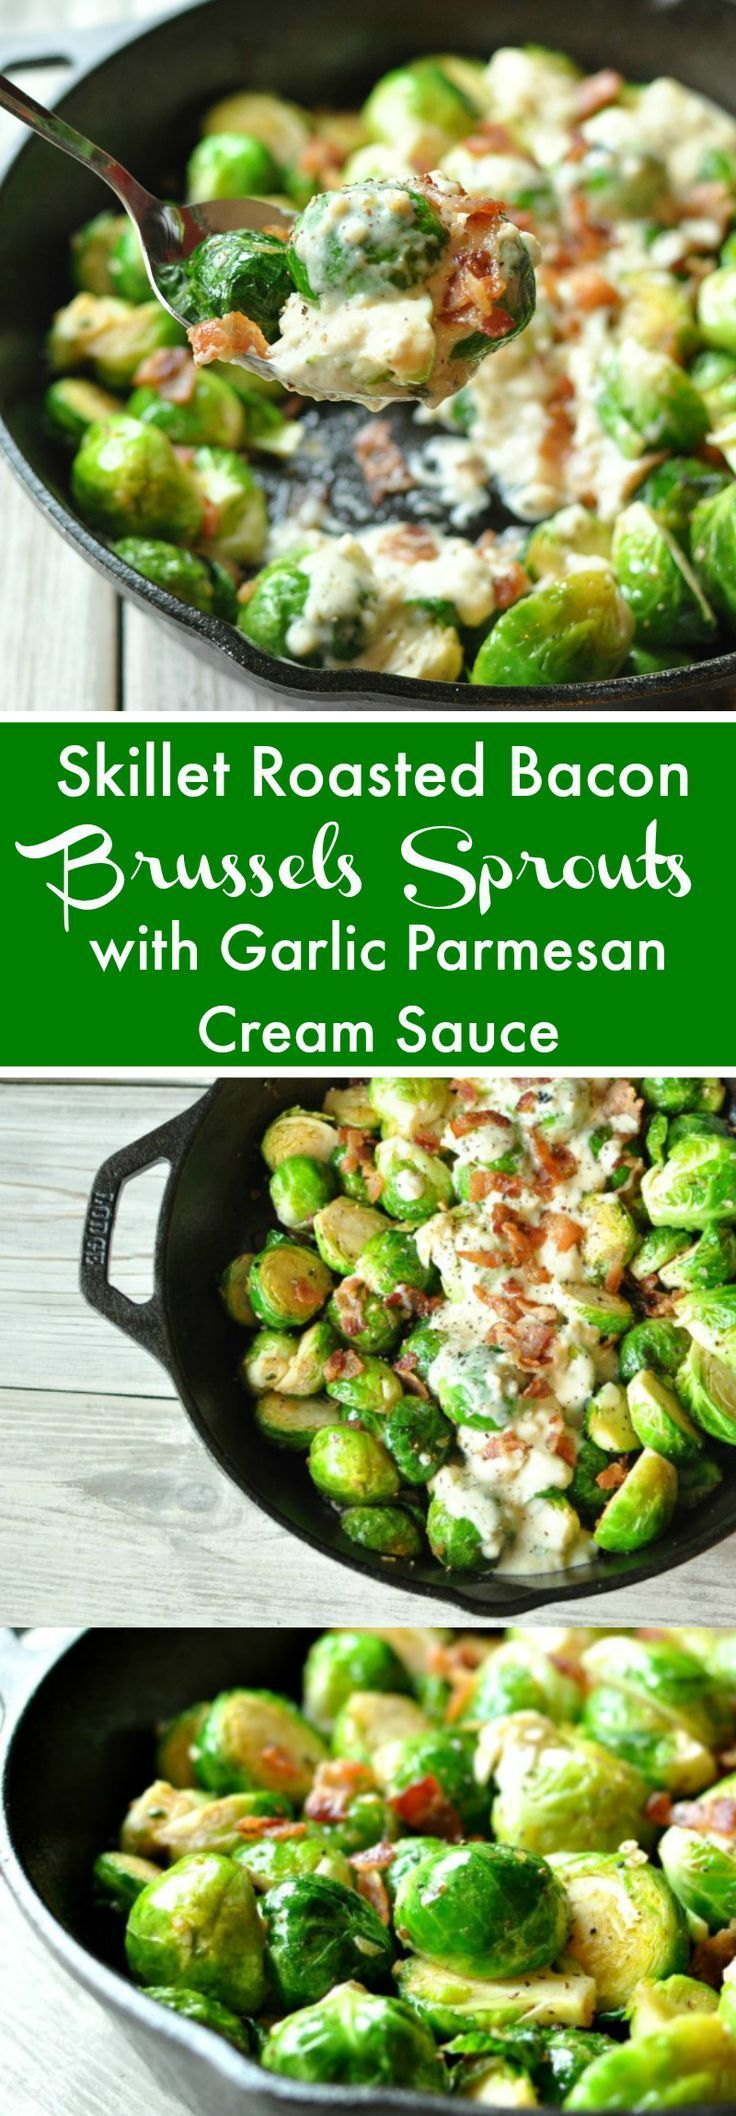 Skillet Roasted Bacon Brussels Sprouts & Garlic Parmesan Cream Sauce